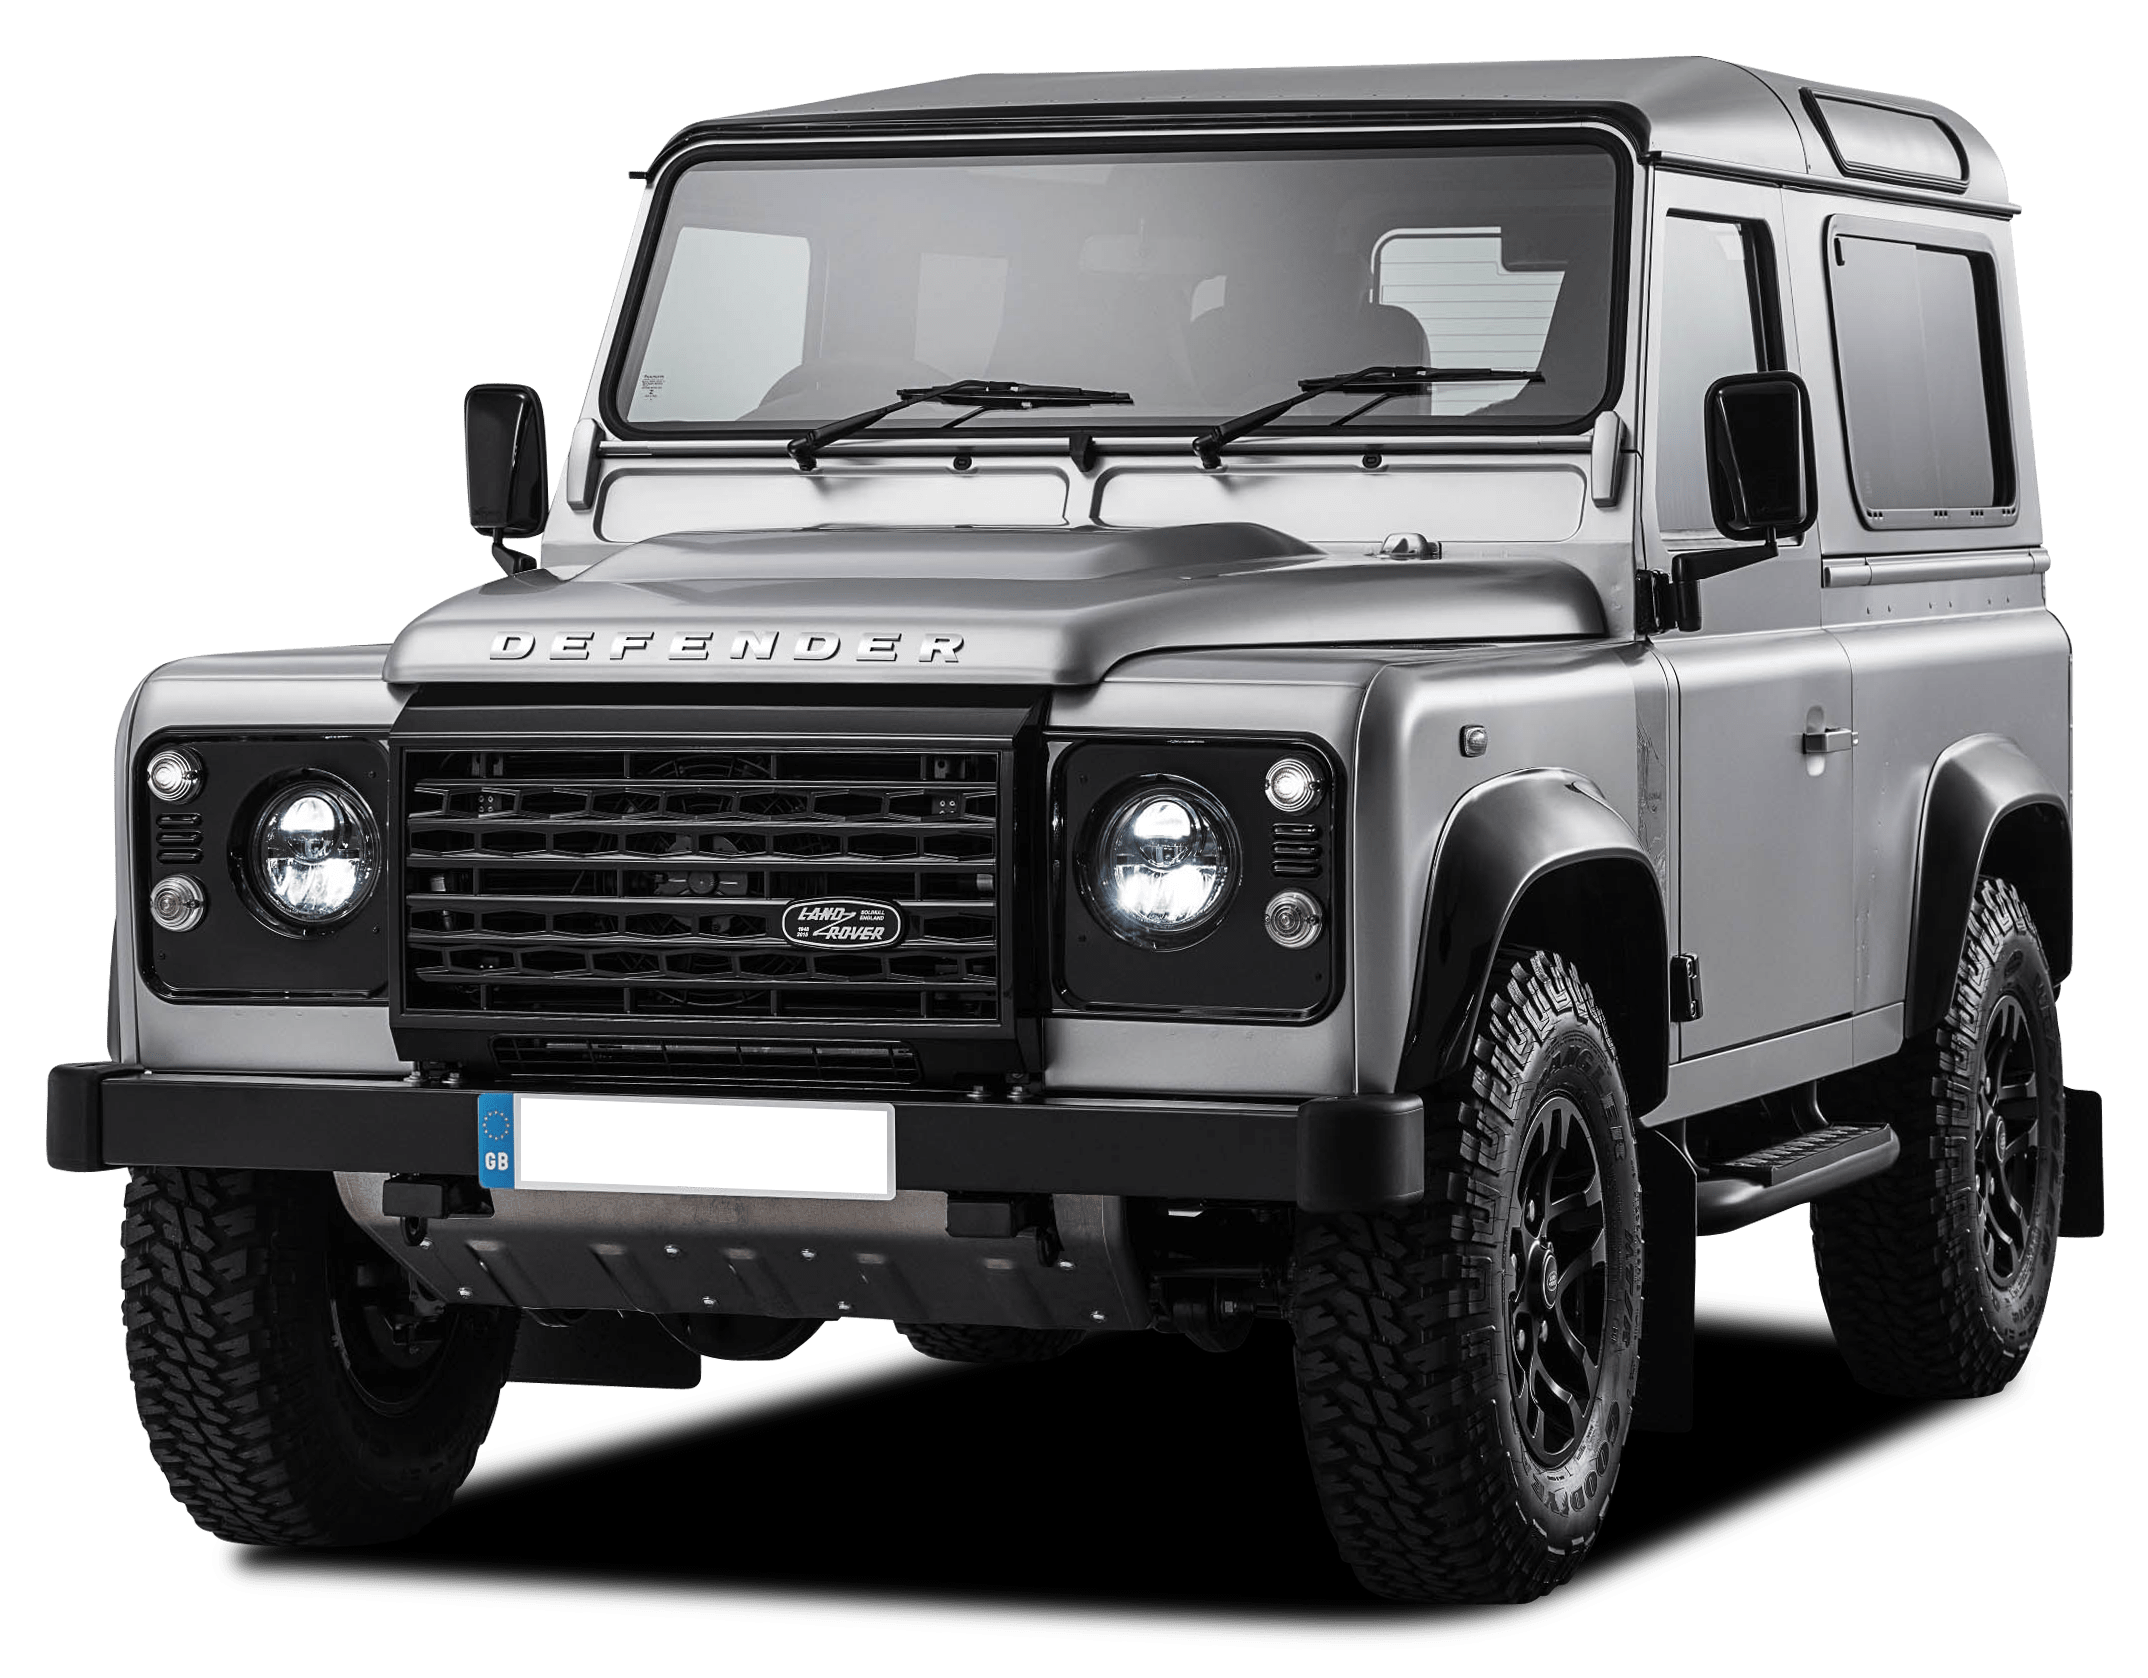 100 land rover defender svx spectre land rover defender svx columnm defender svx 90. Black Bedroom Furniture Sets. Home Design Ideas